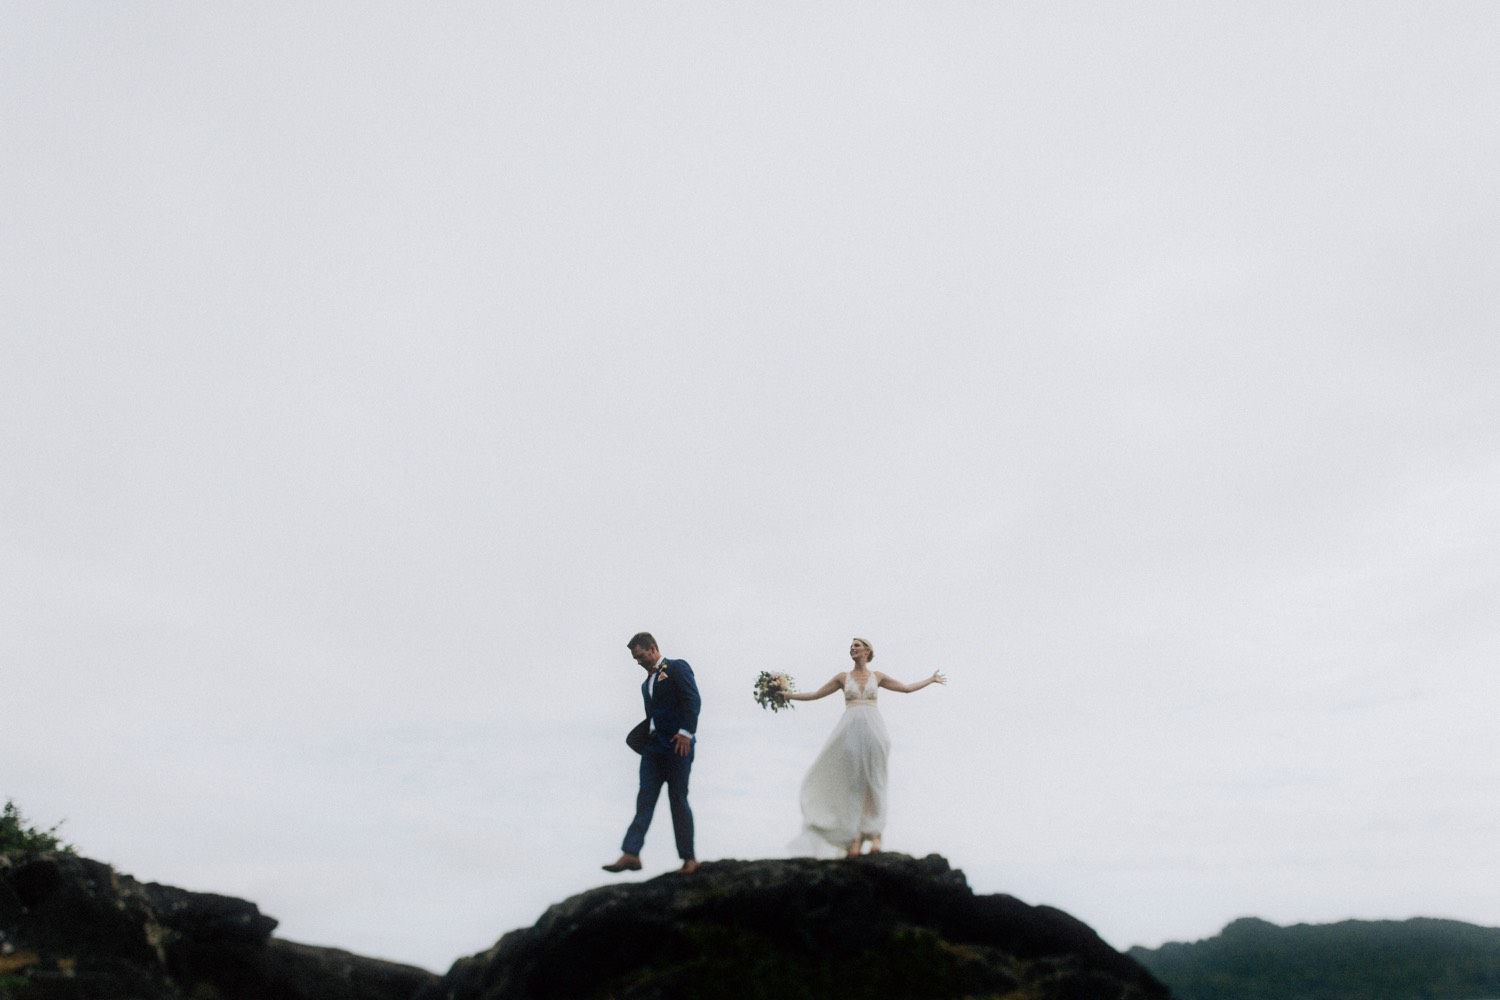 wedding couple eloping on a cliffside in tofino bc